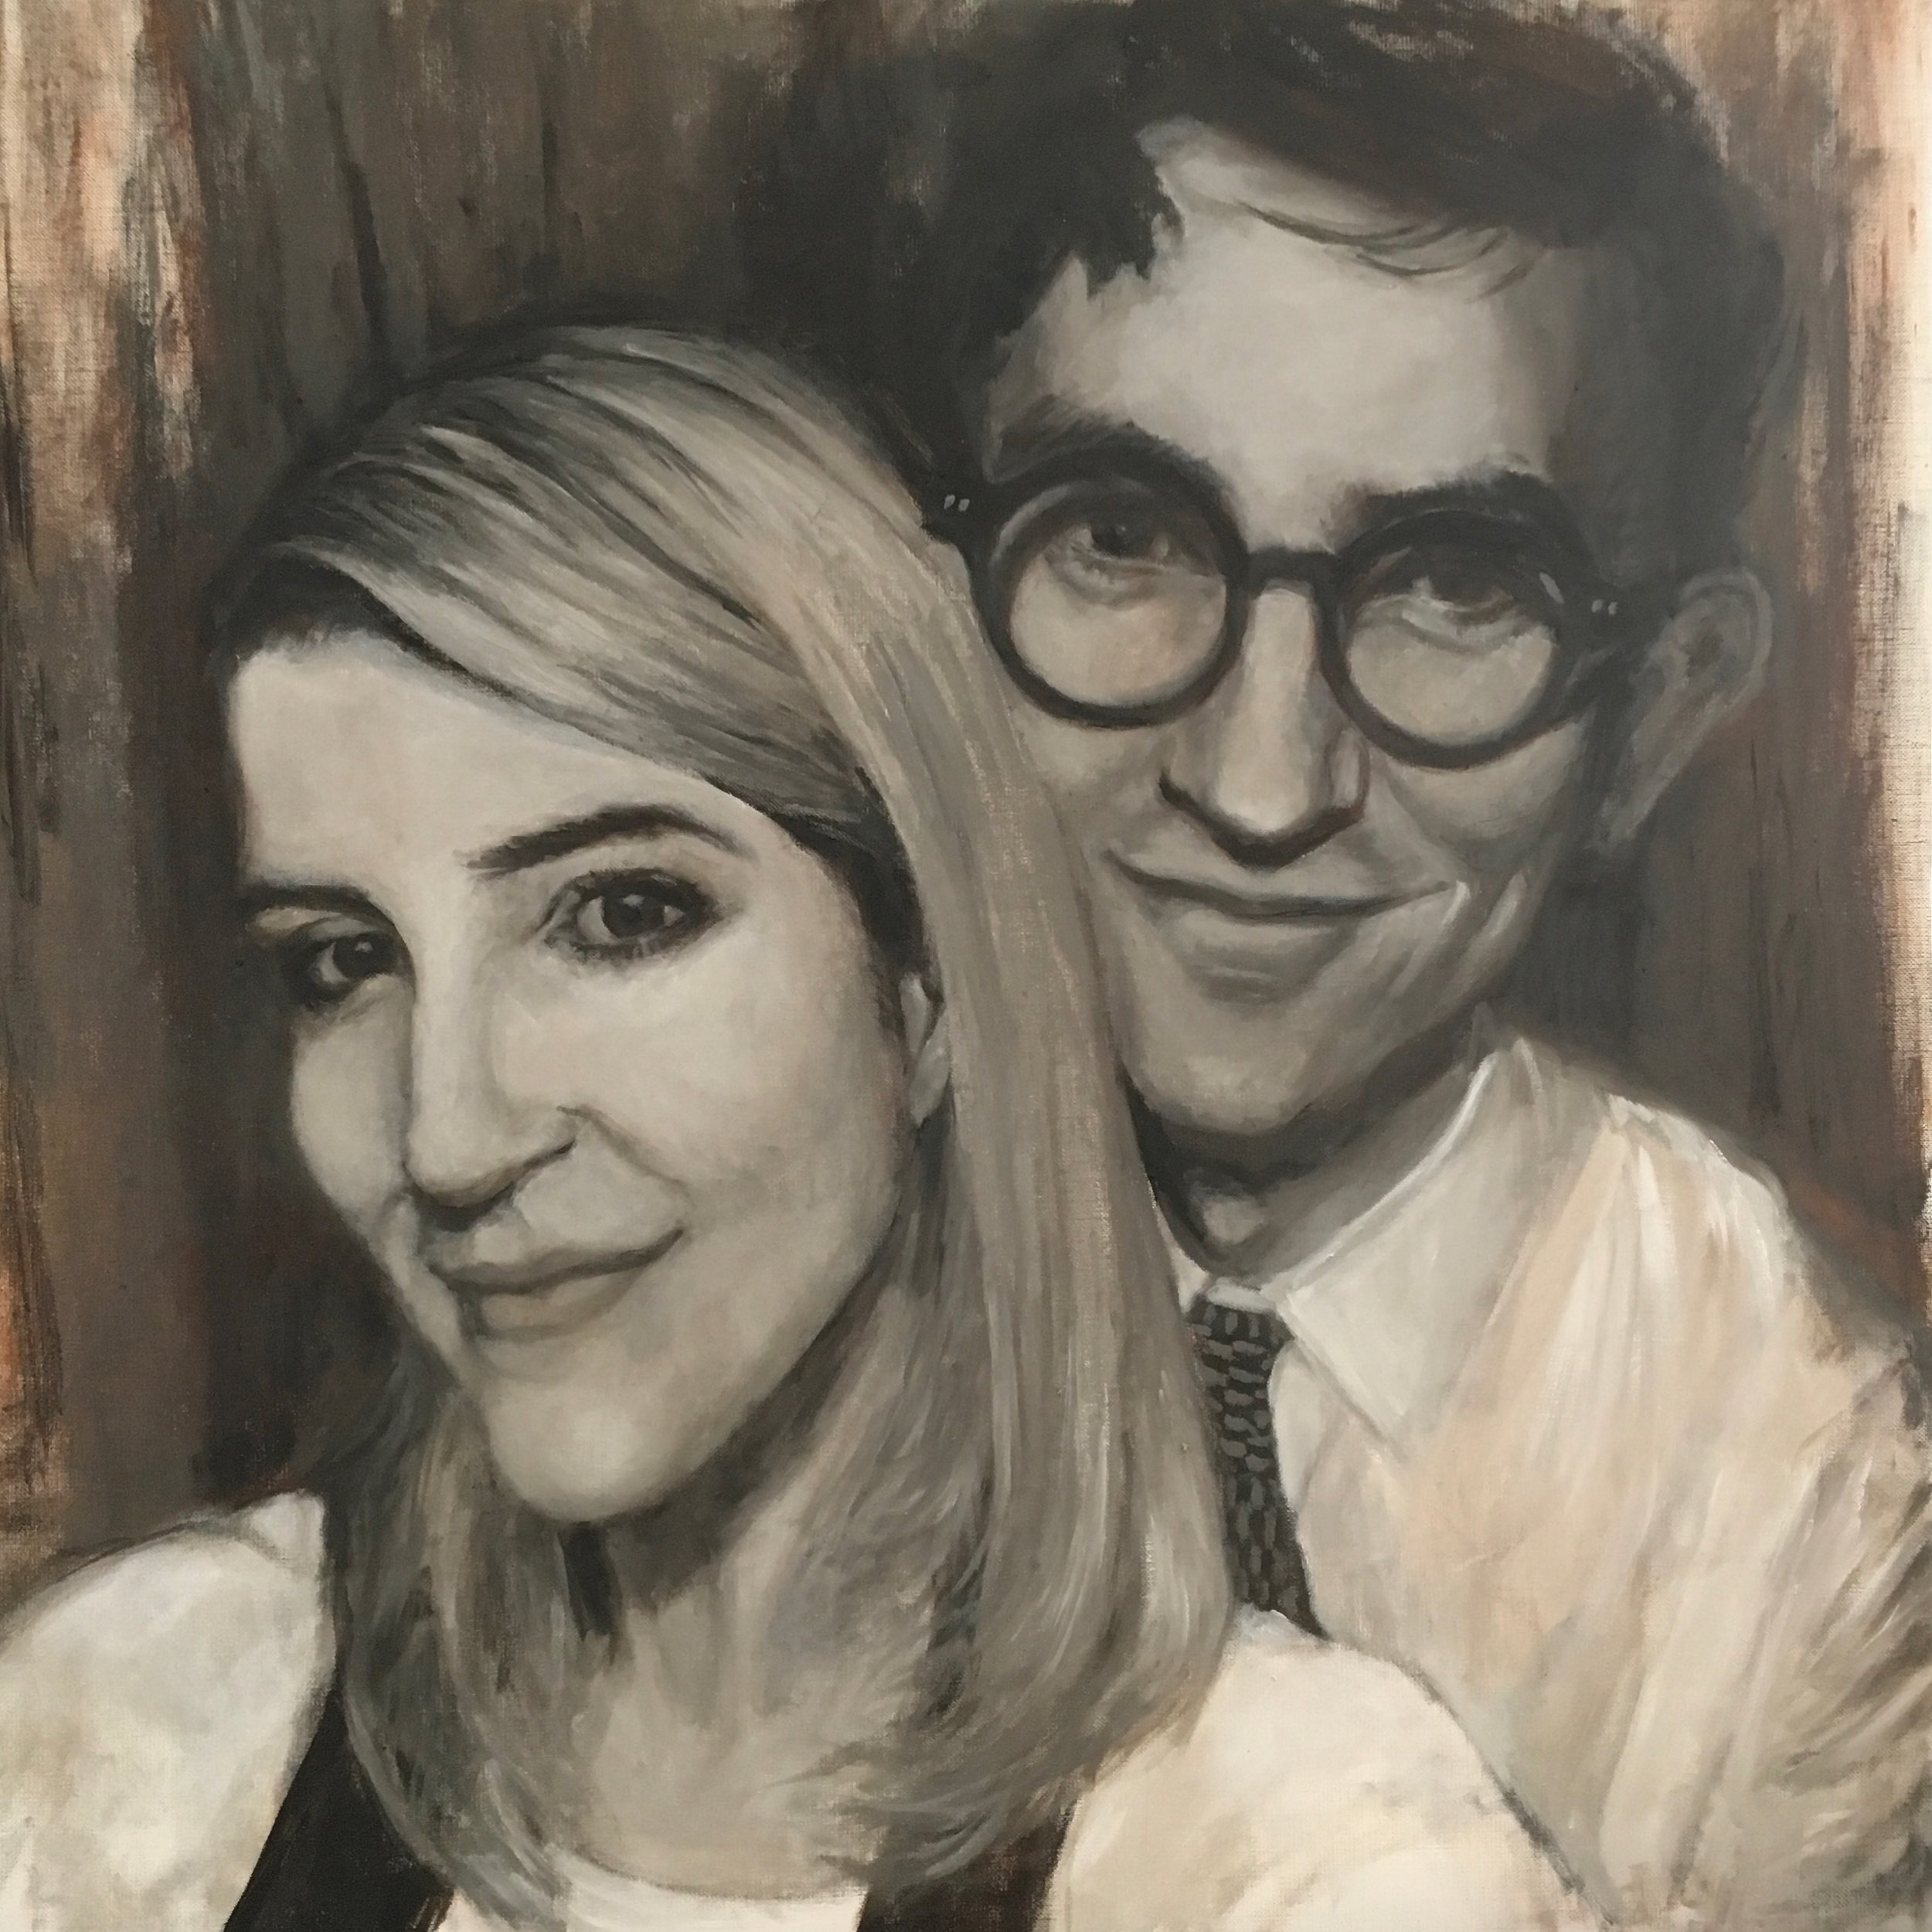 Evan & Oivia (Commission)  Oil on linen  16 x 16 inches  Sold